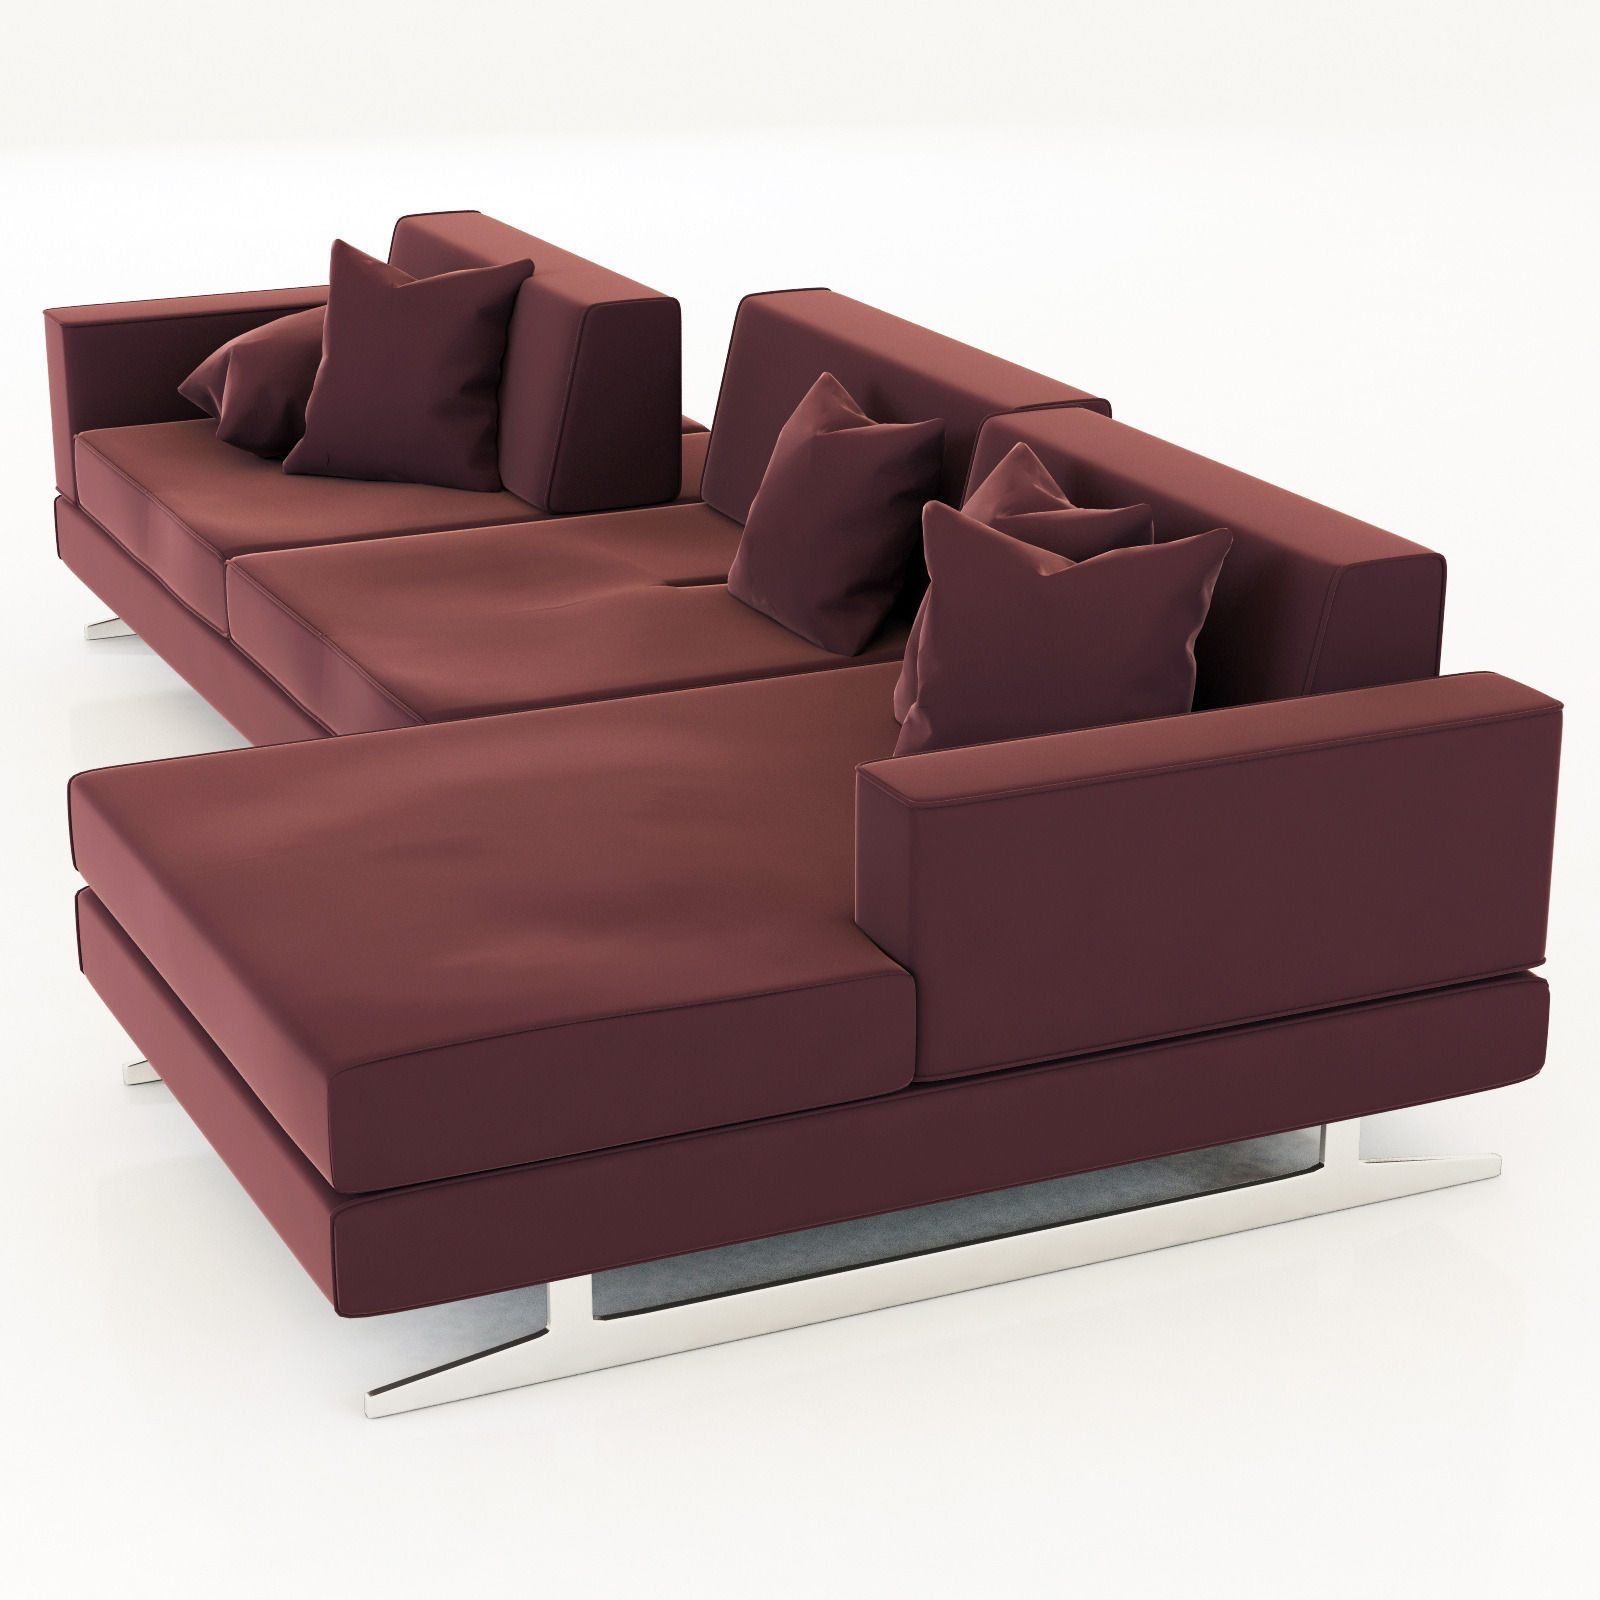 Movie sofa movie sofa cb2 thesofa for Cb2 leather sectional